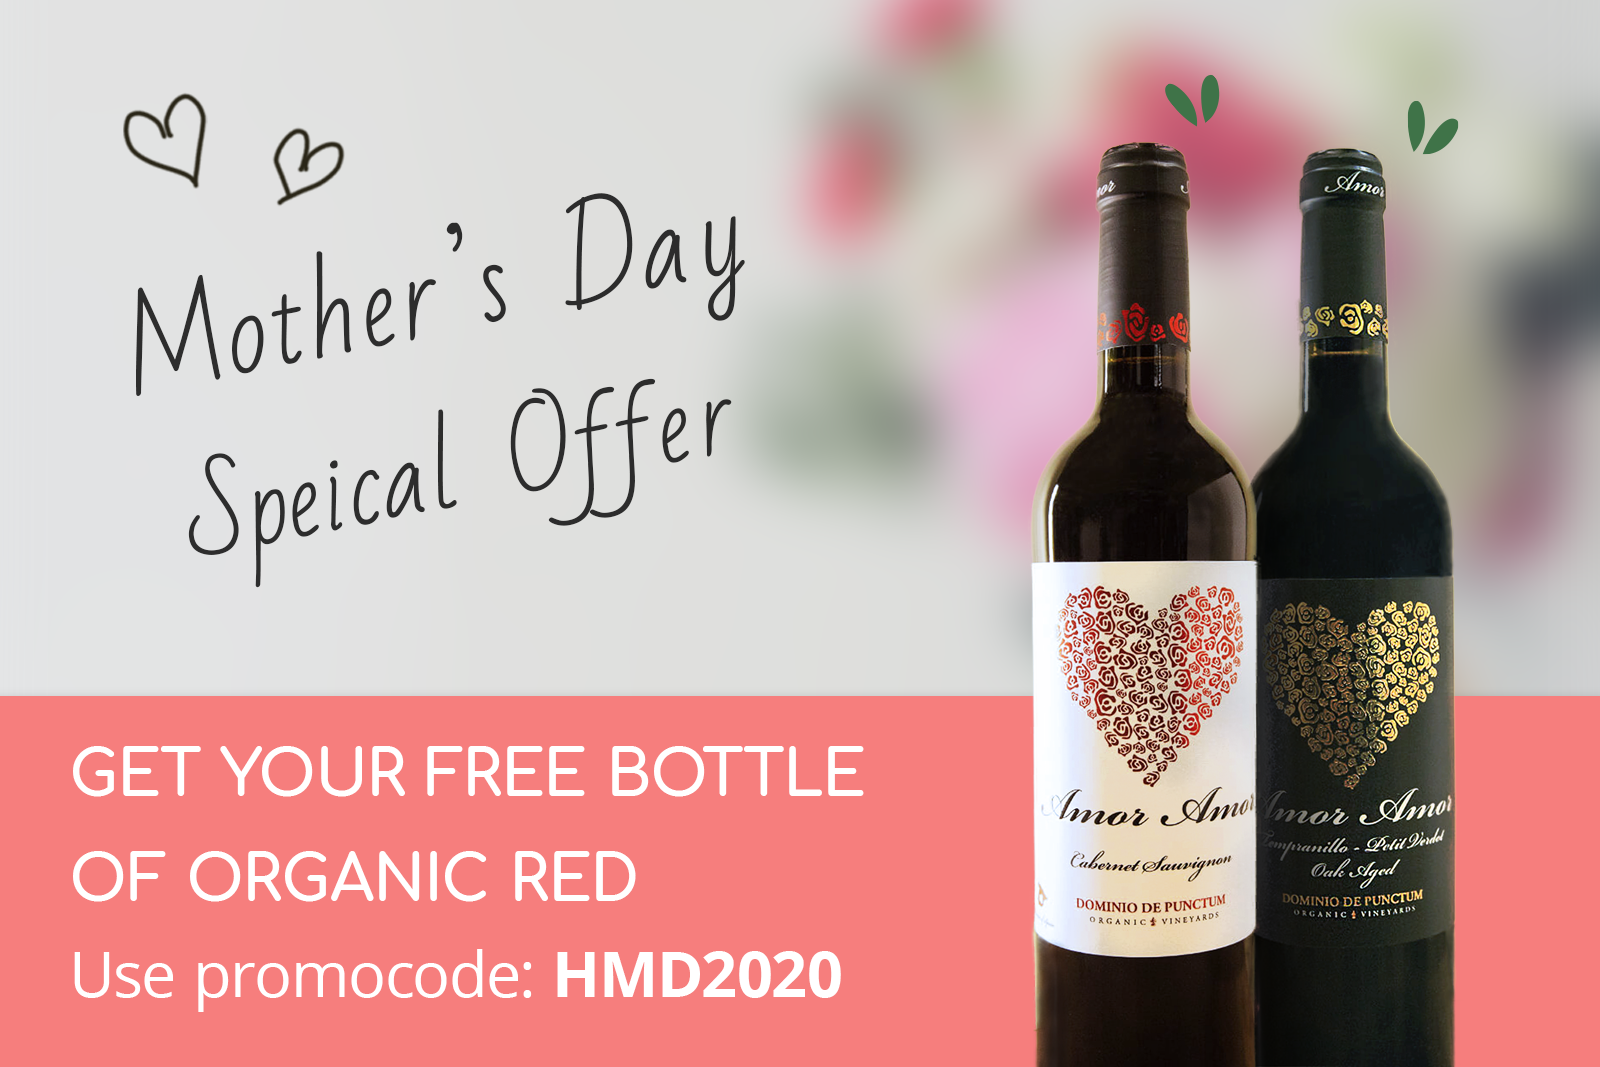 Grapetime mothers day offer free organic red wine